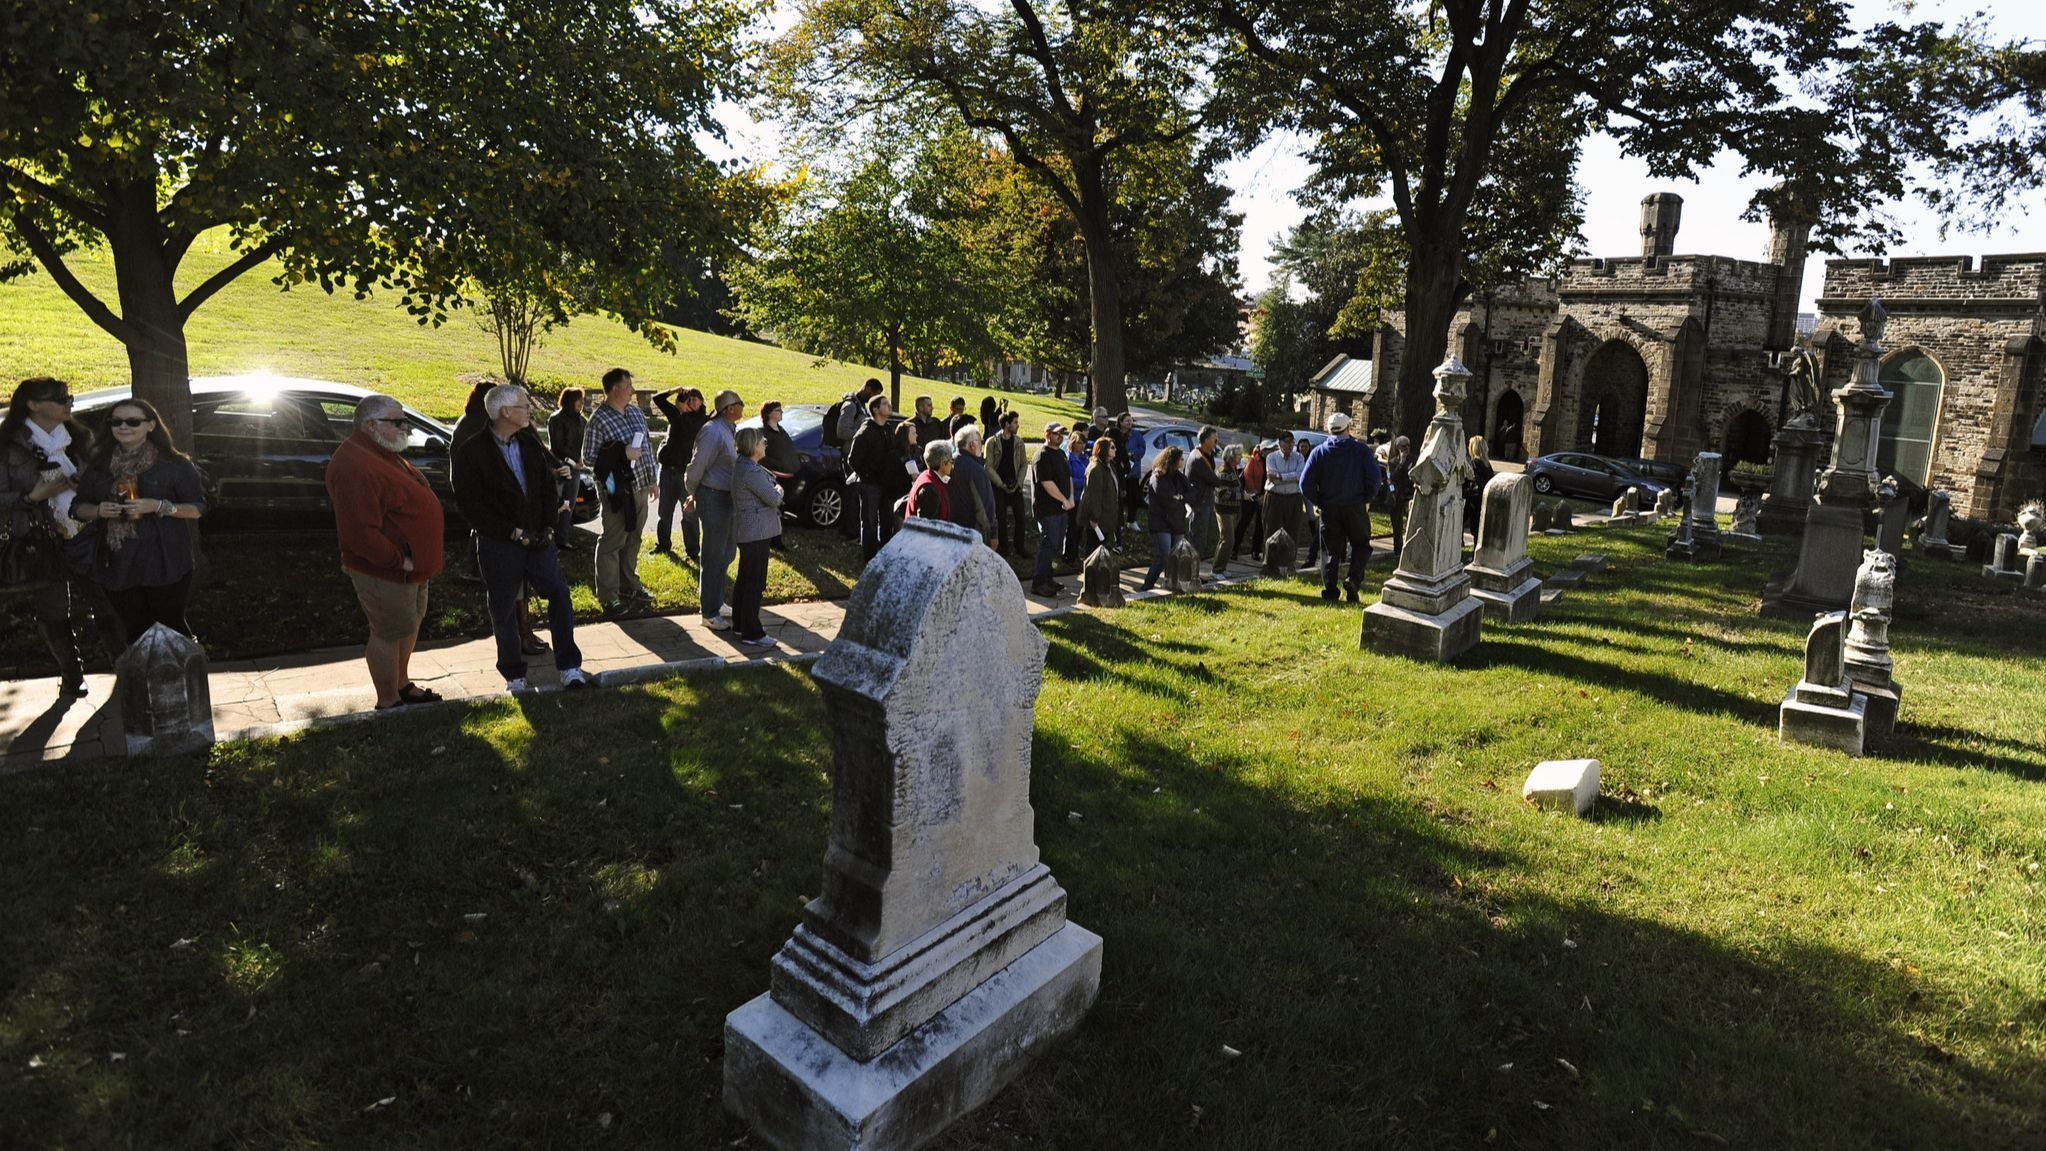 Baltimore, Md.--10/25/14-- ***NOTE: This is NOT the Maryland Historical Society cemetery tour.*** B